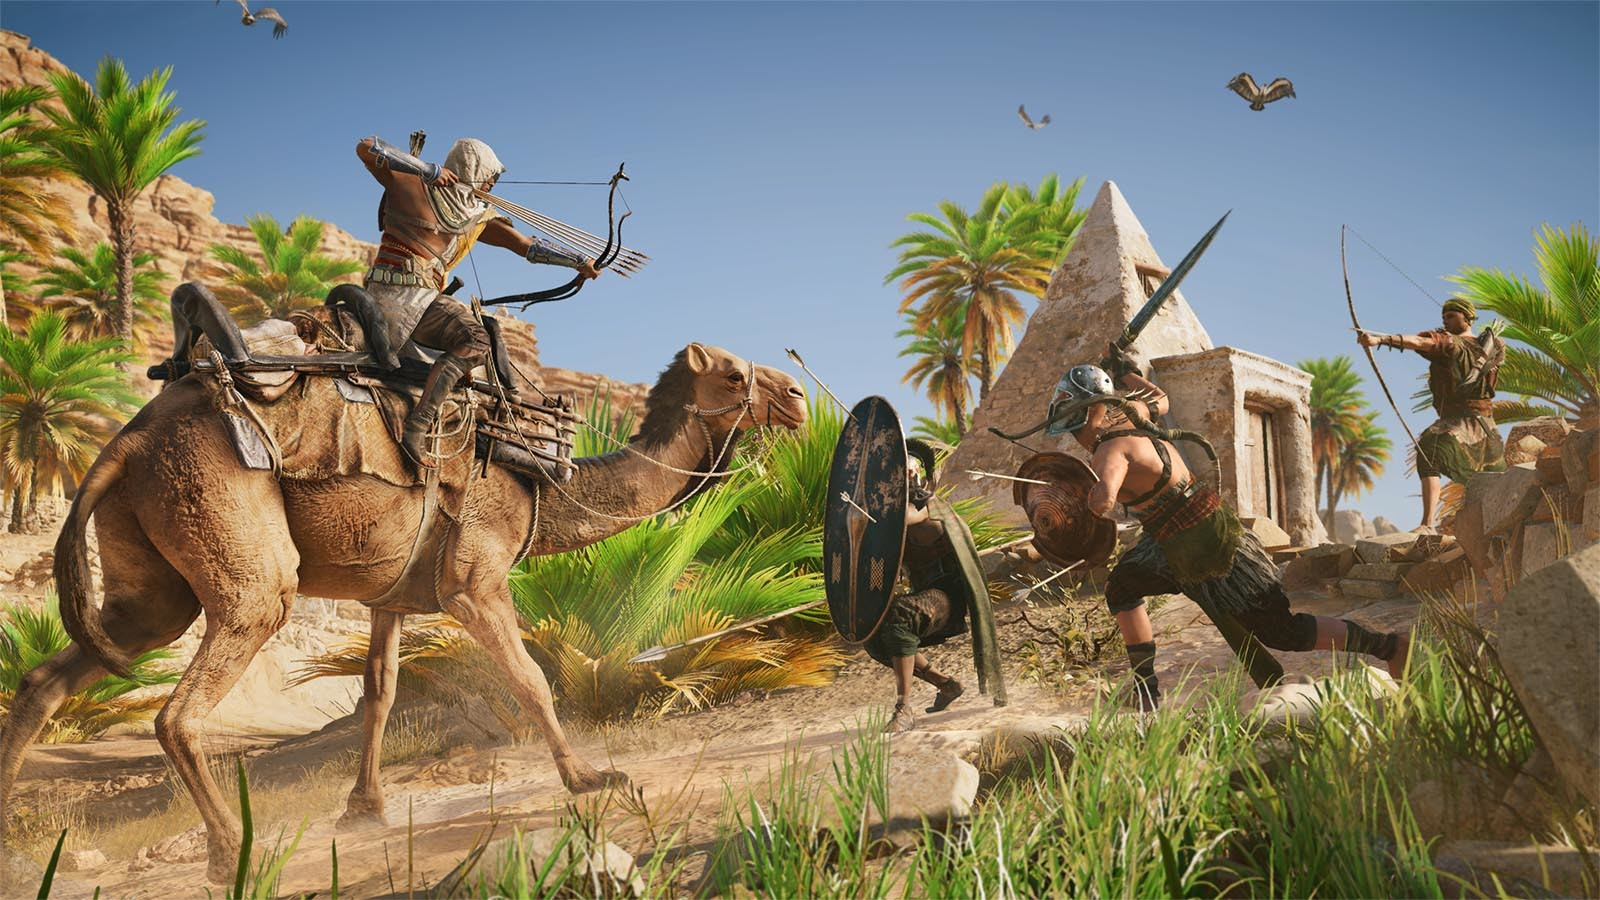 ac origins uplay activation code